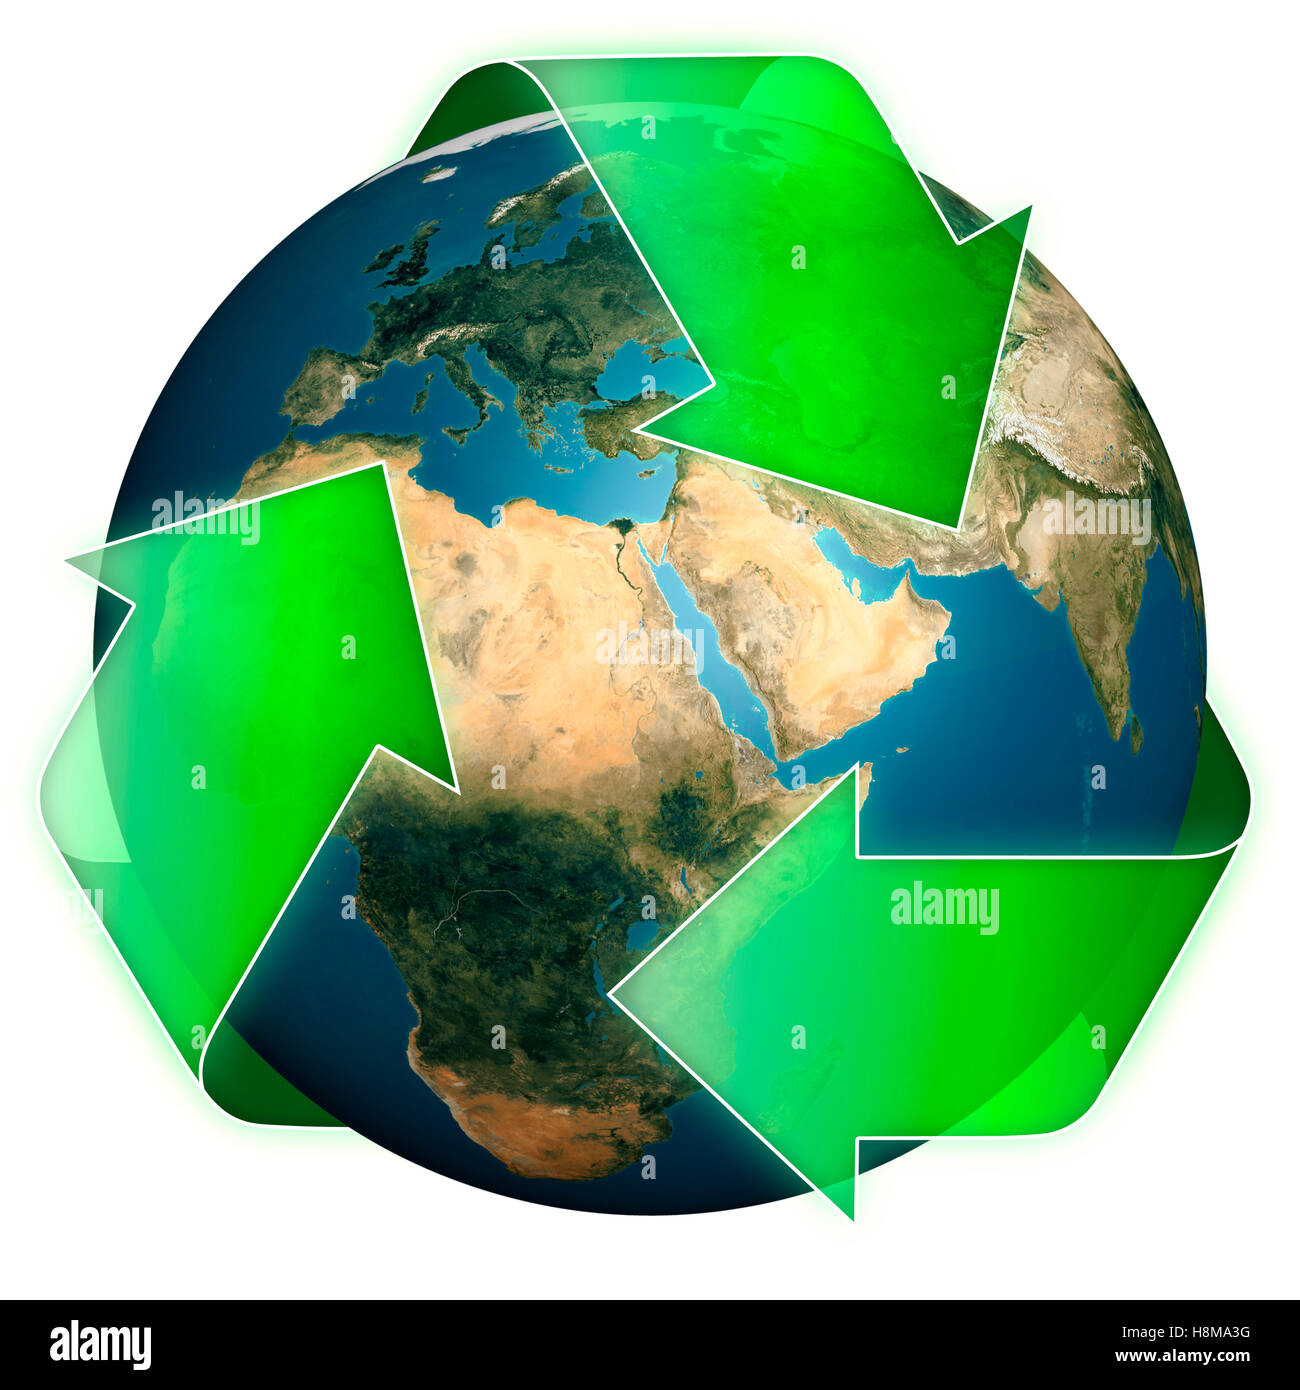 Earth globe inside a recycling symbol, conceptual illustration - Stock Image